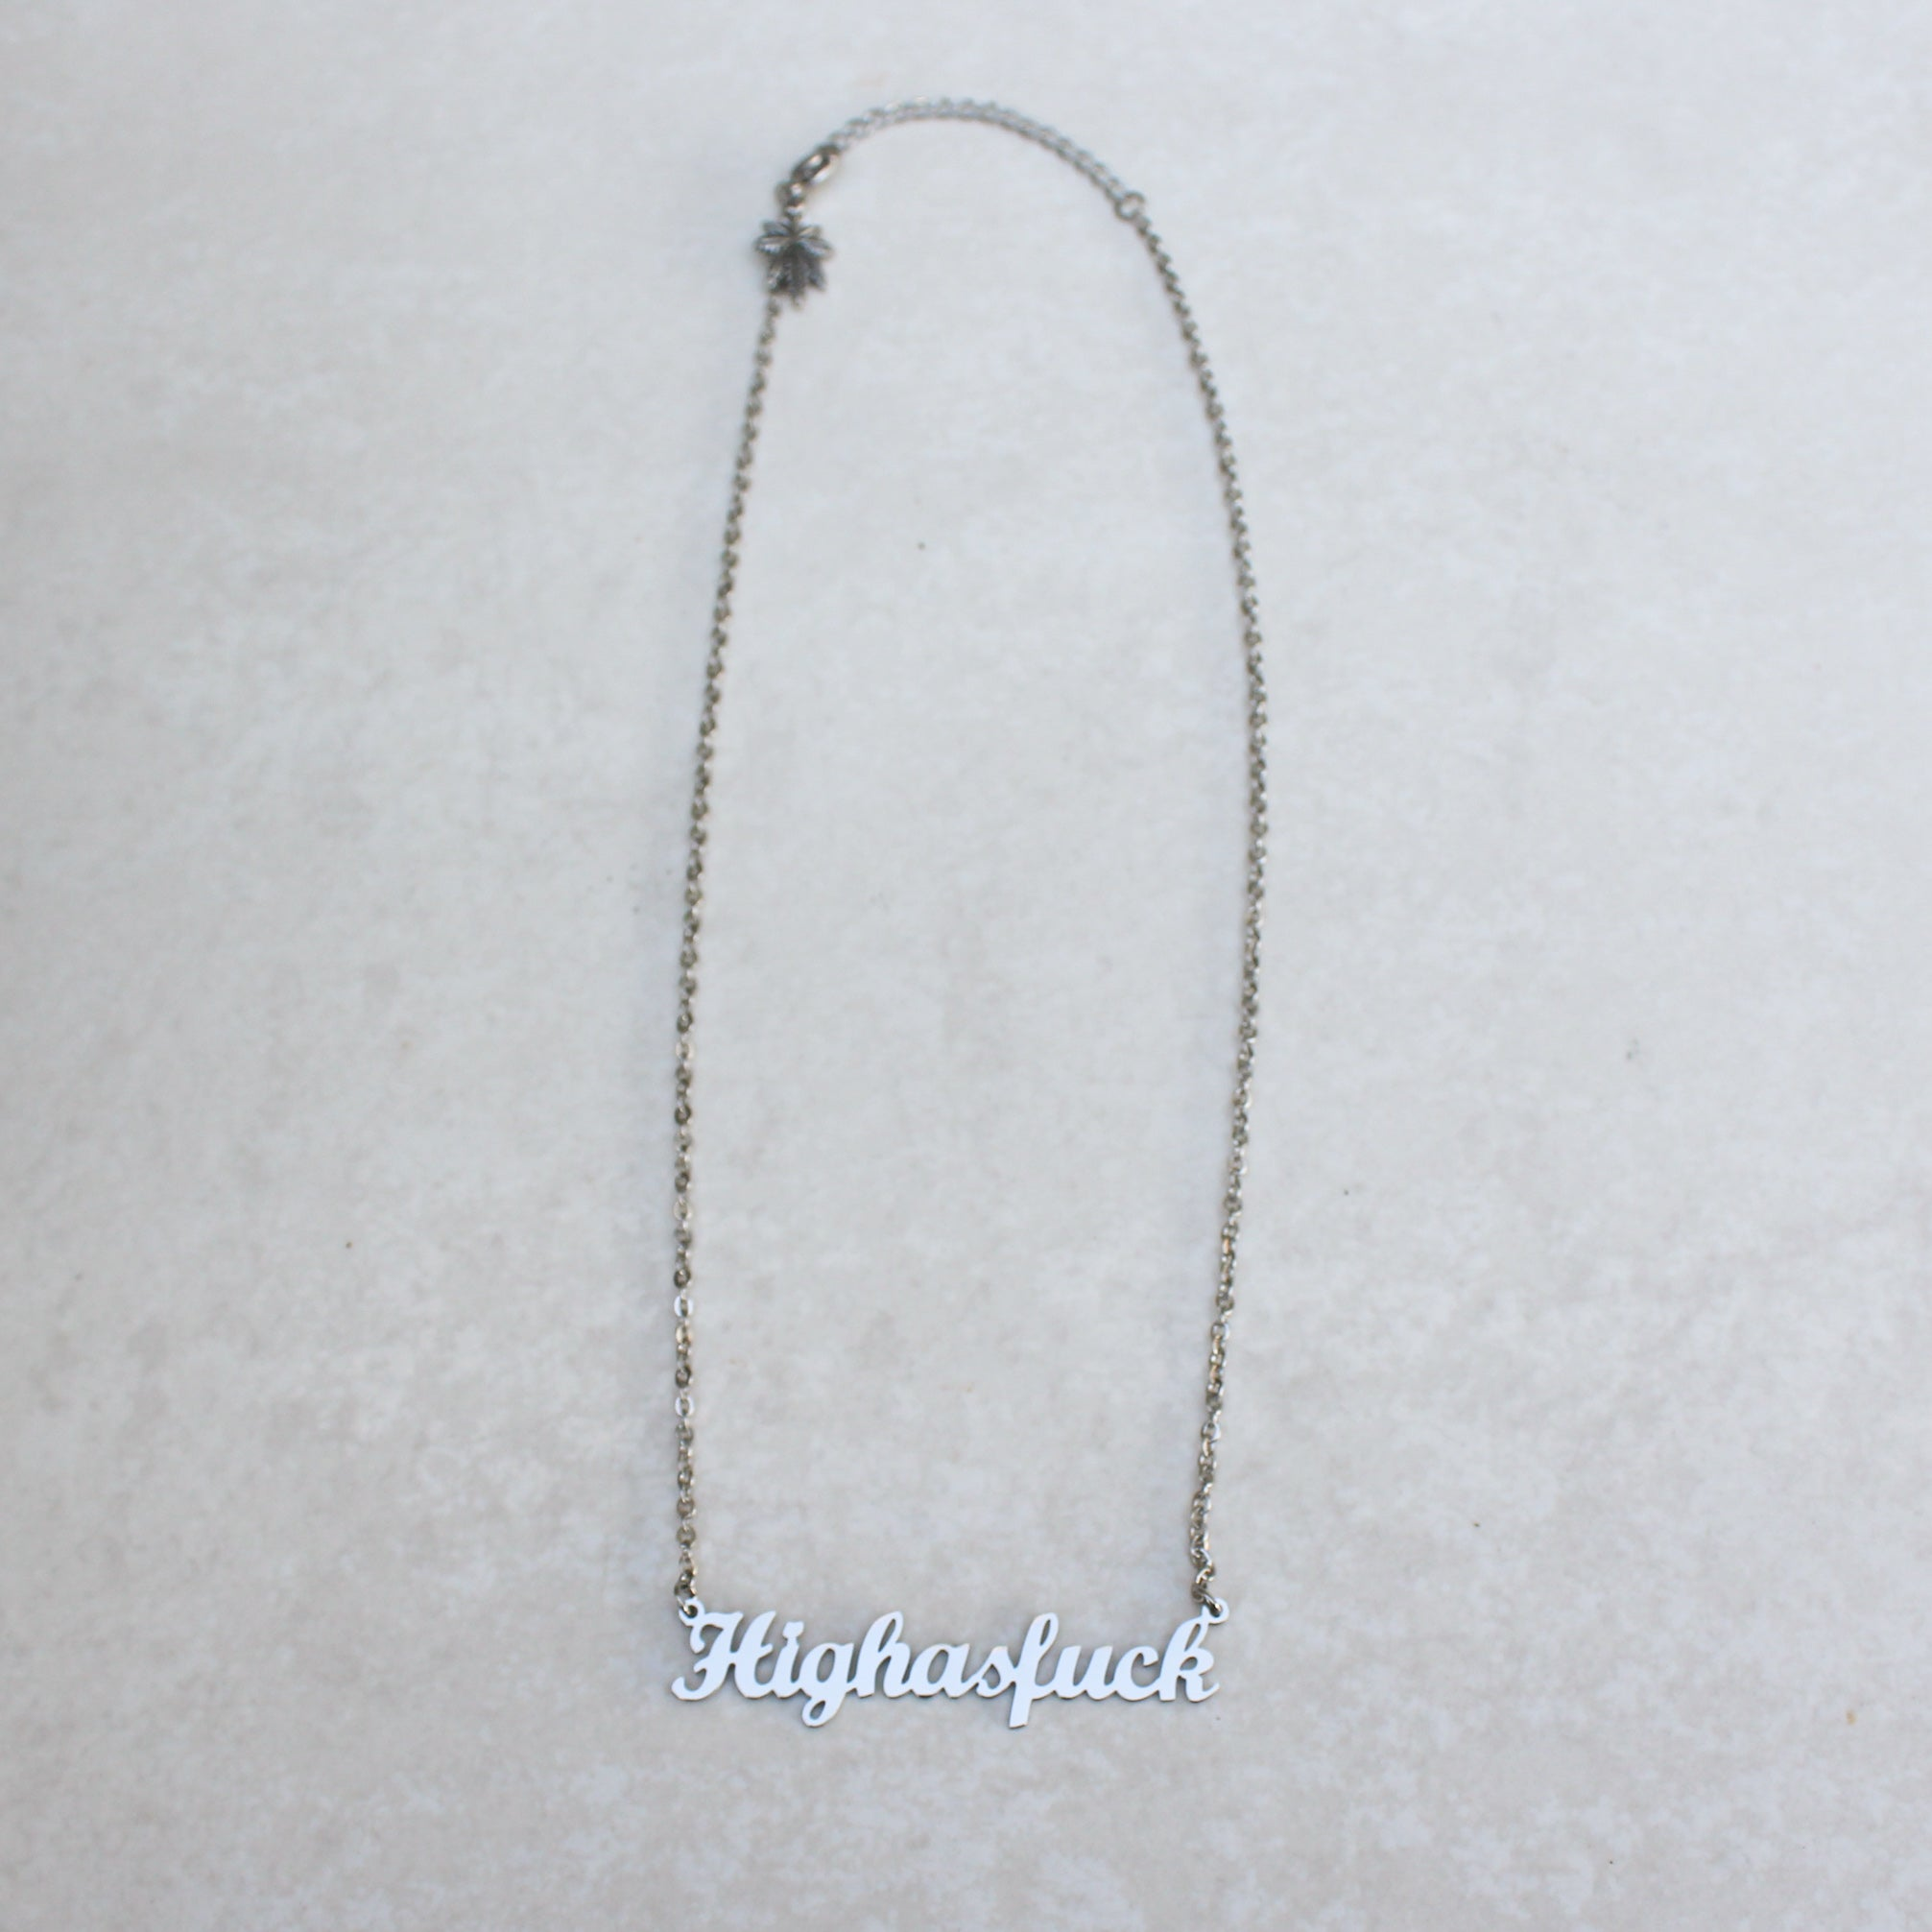 High As Fuck Silver Statement Necklace - Blunted Objects